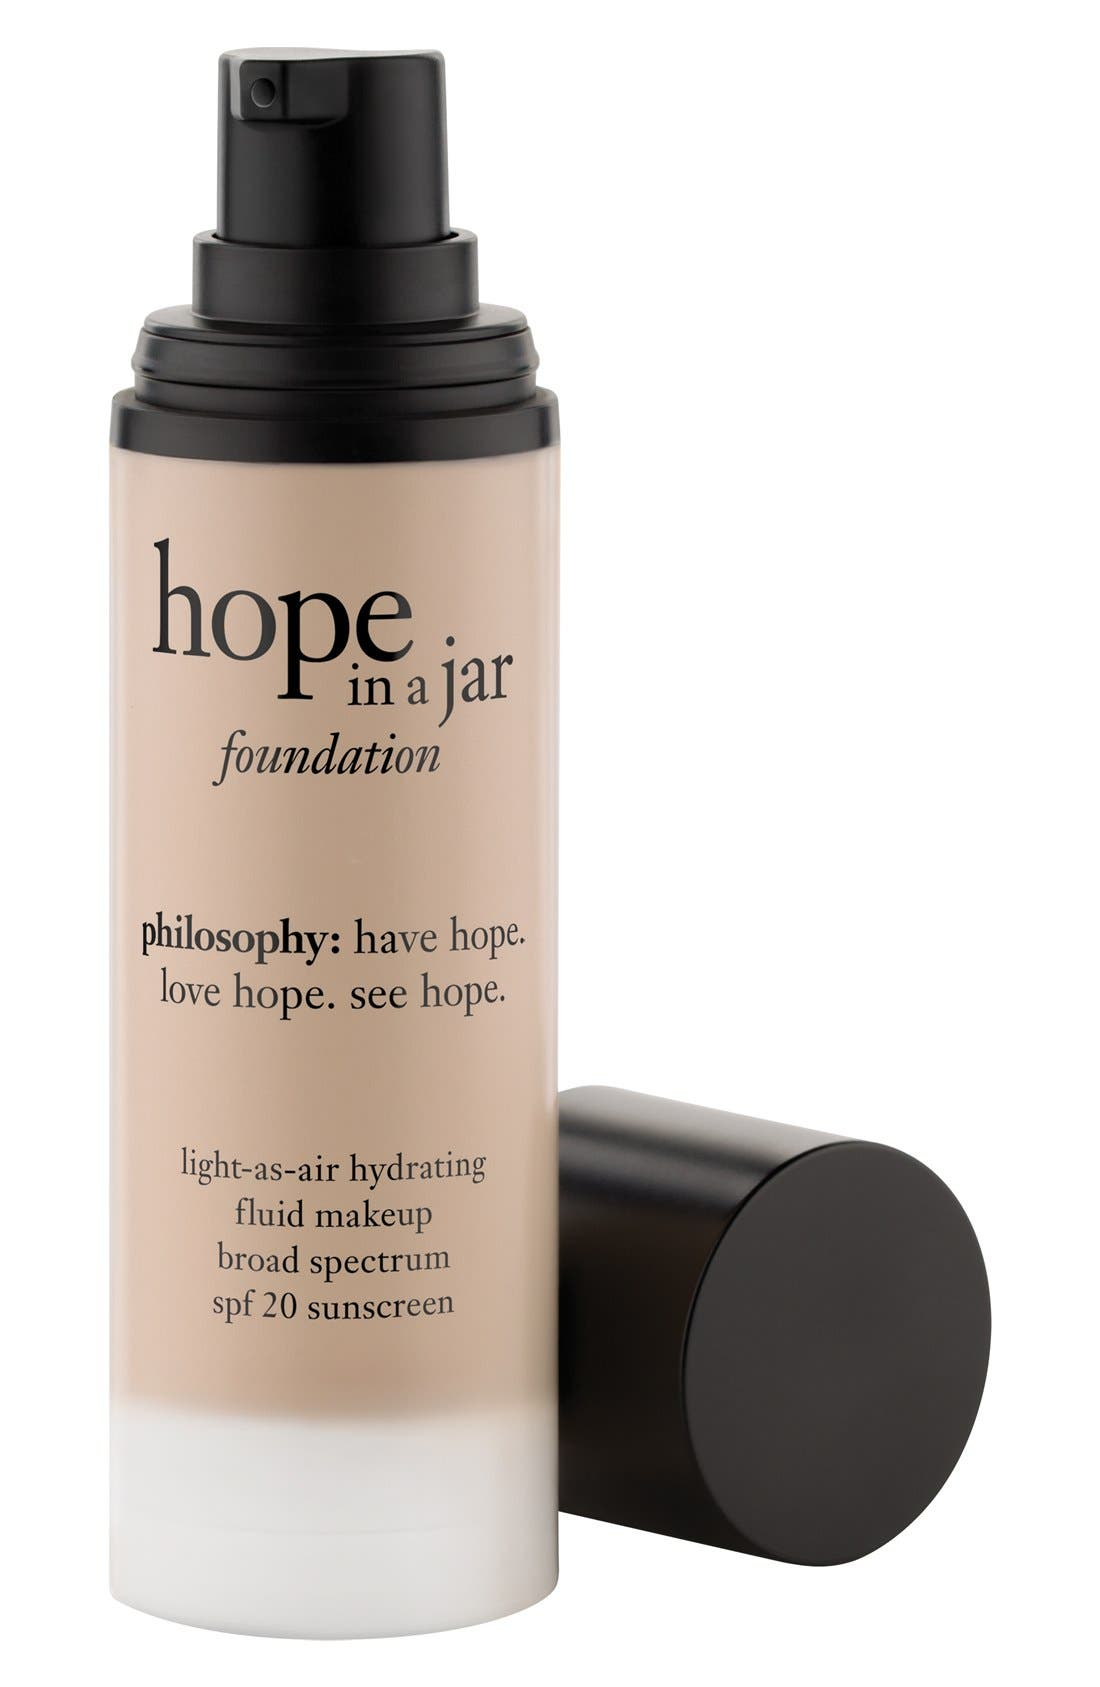 philosophy 'hope in a jar' light-as-air hydrating fluid foundation SPF 20